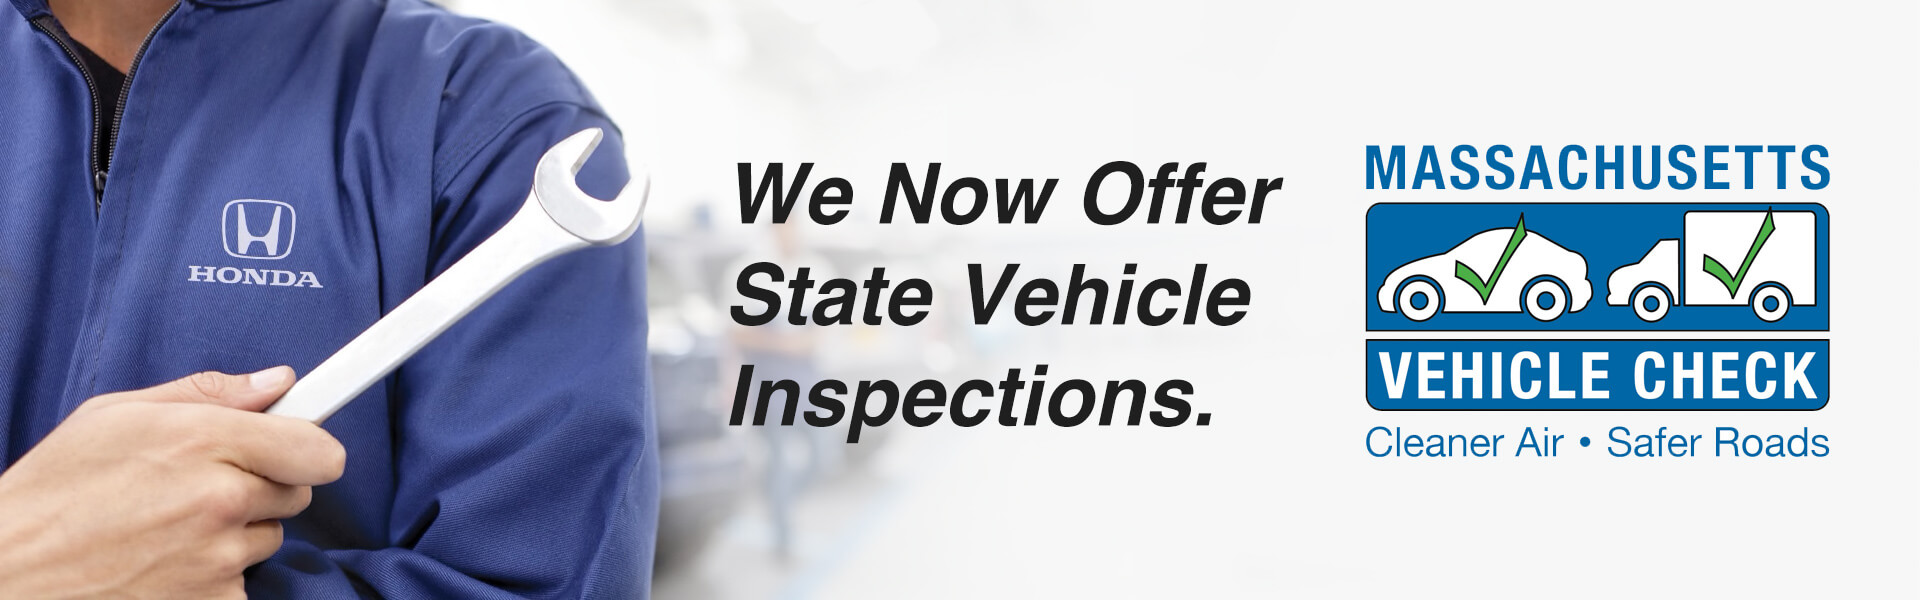 We Now Offer State Vehicle Insepctions